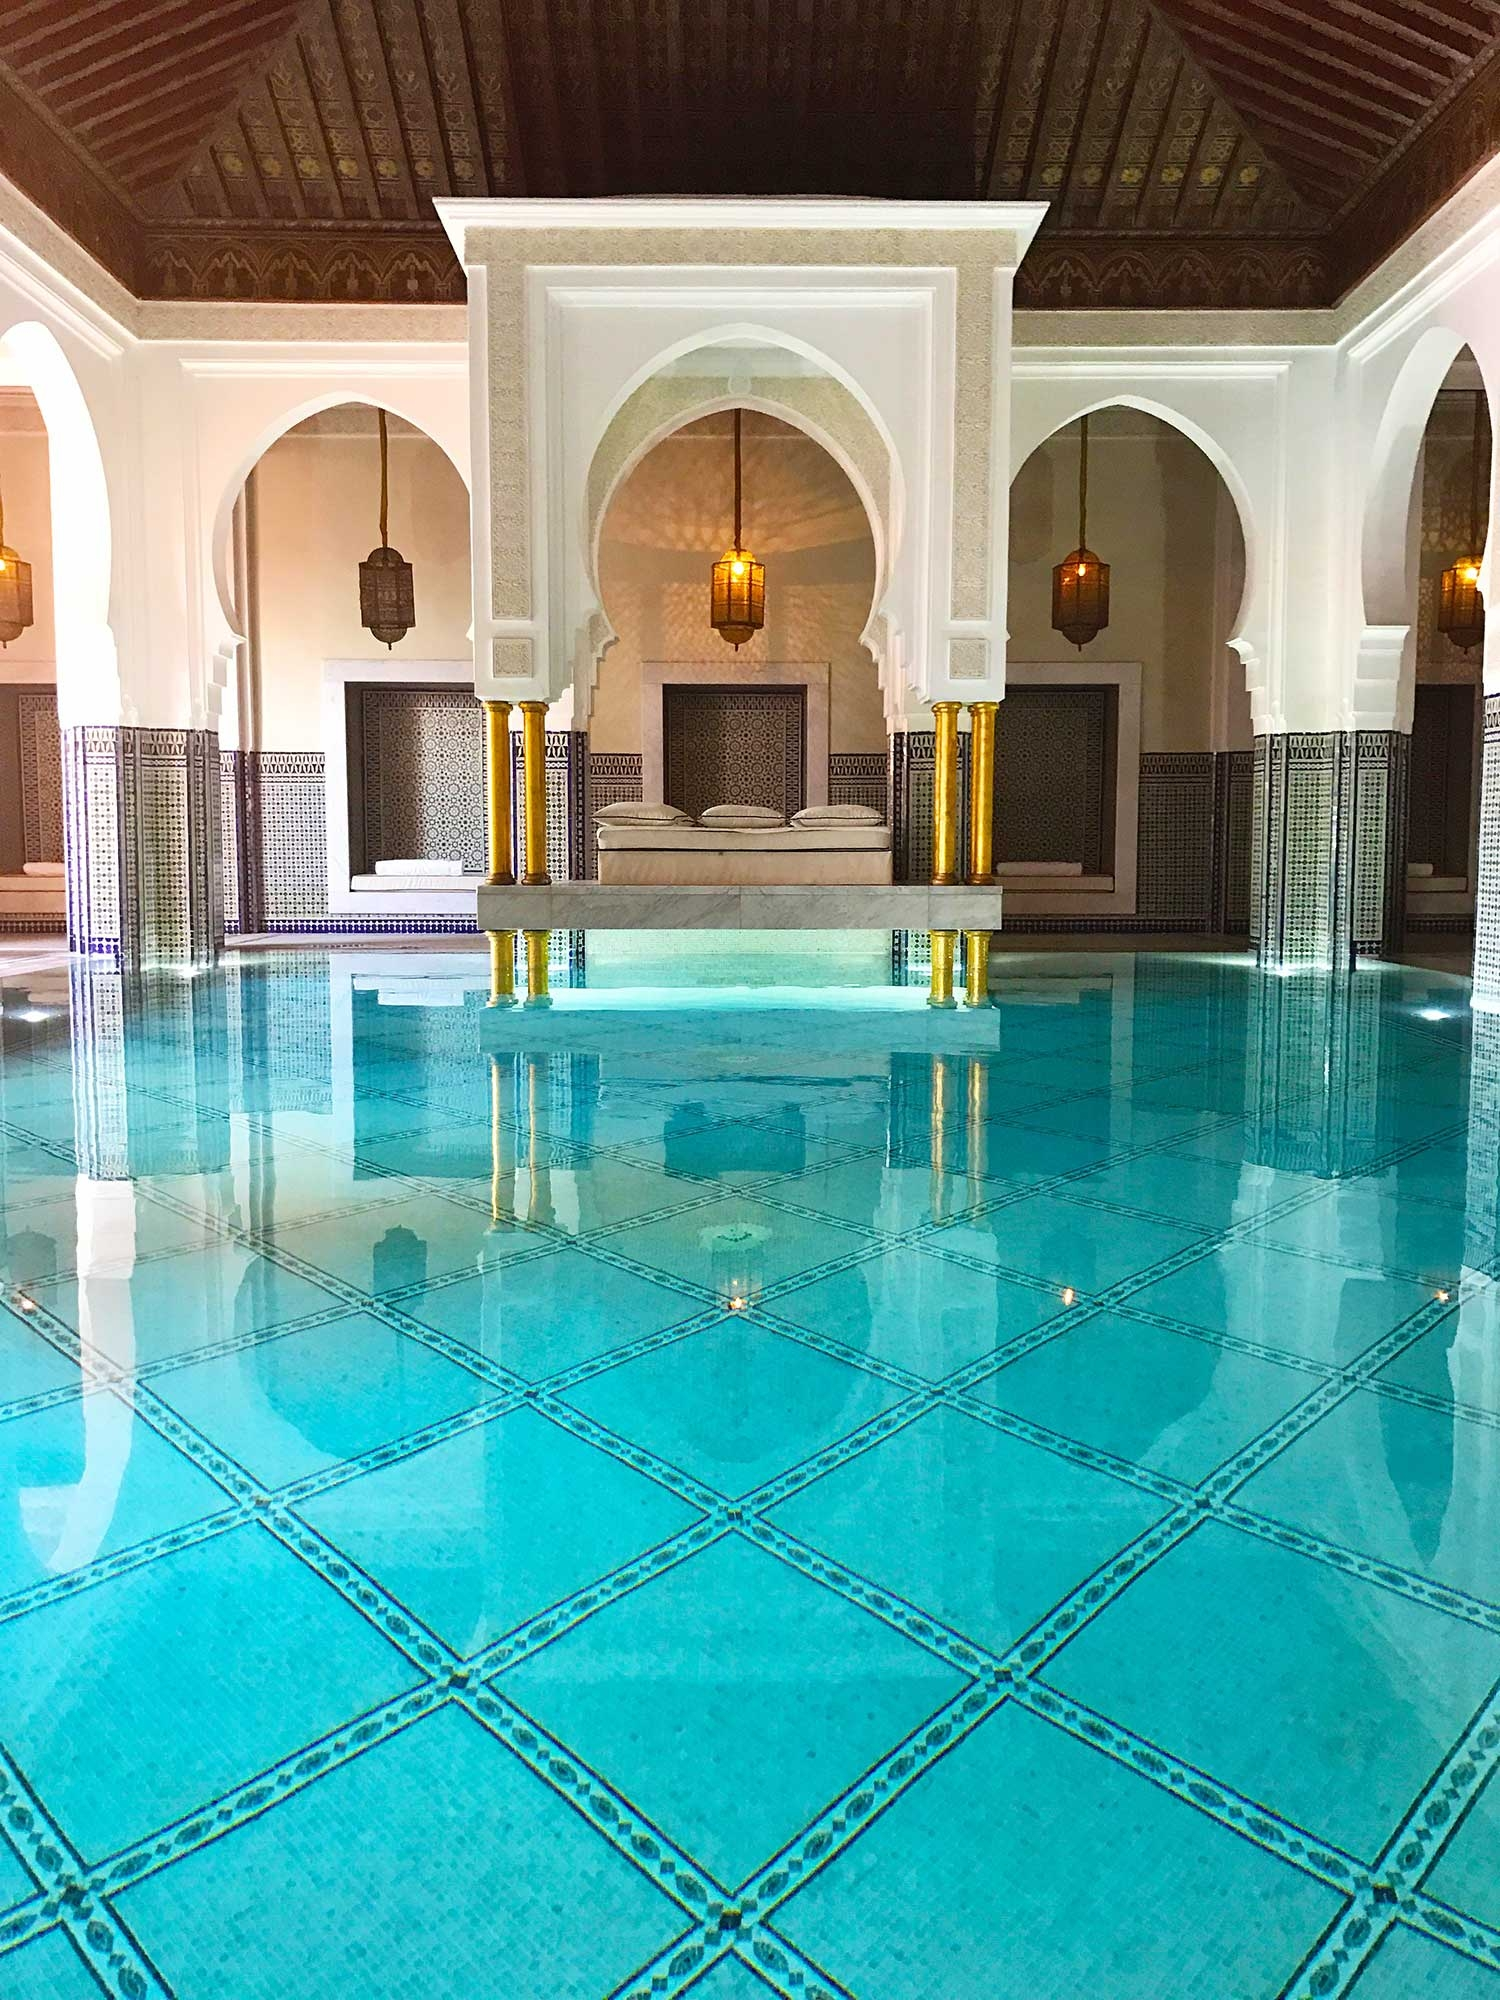 The large spa at La Moamounia